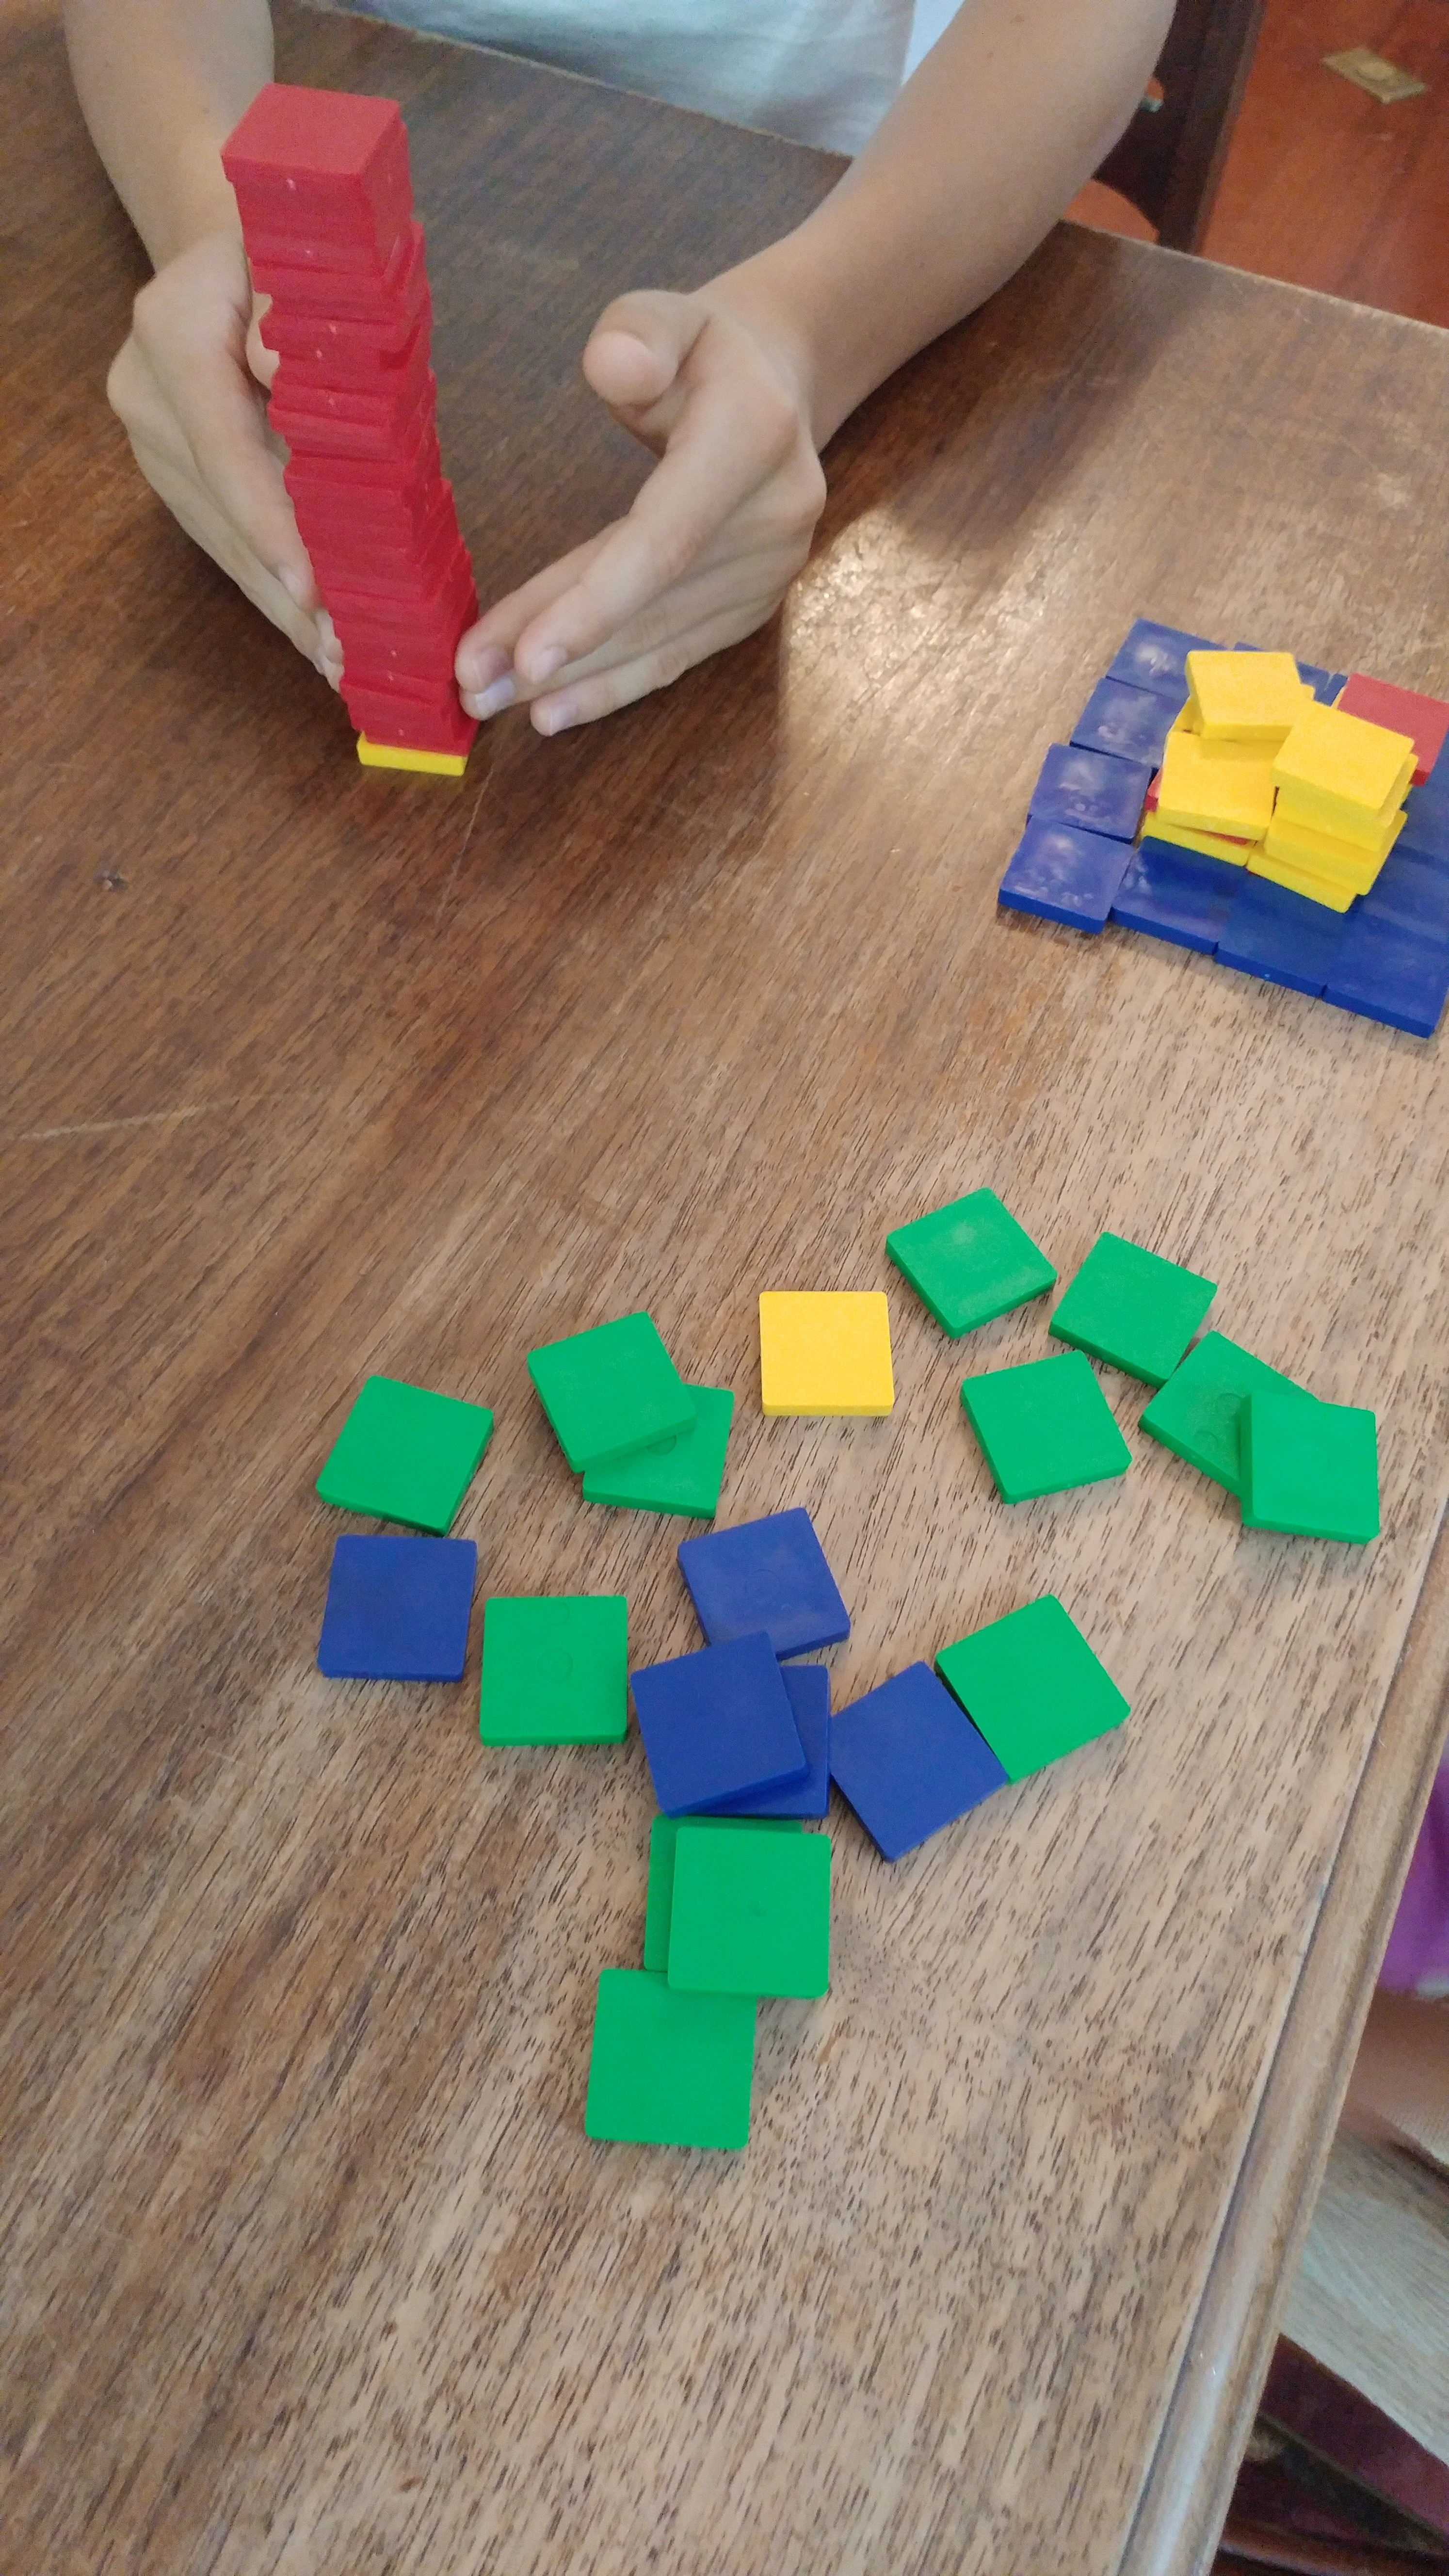 Subtracting game